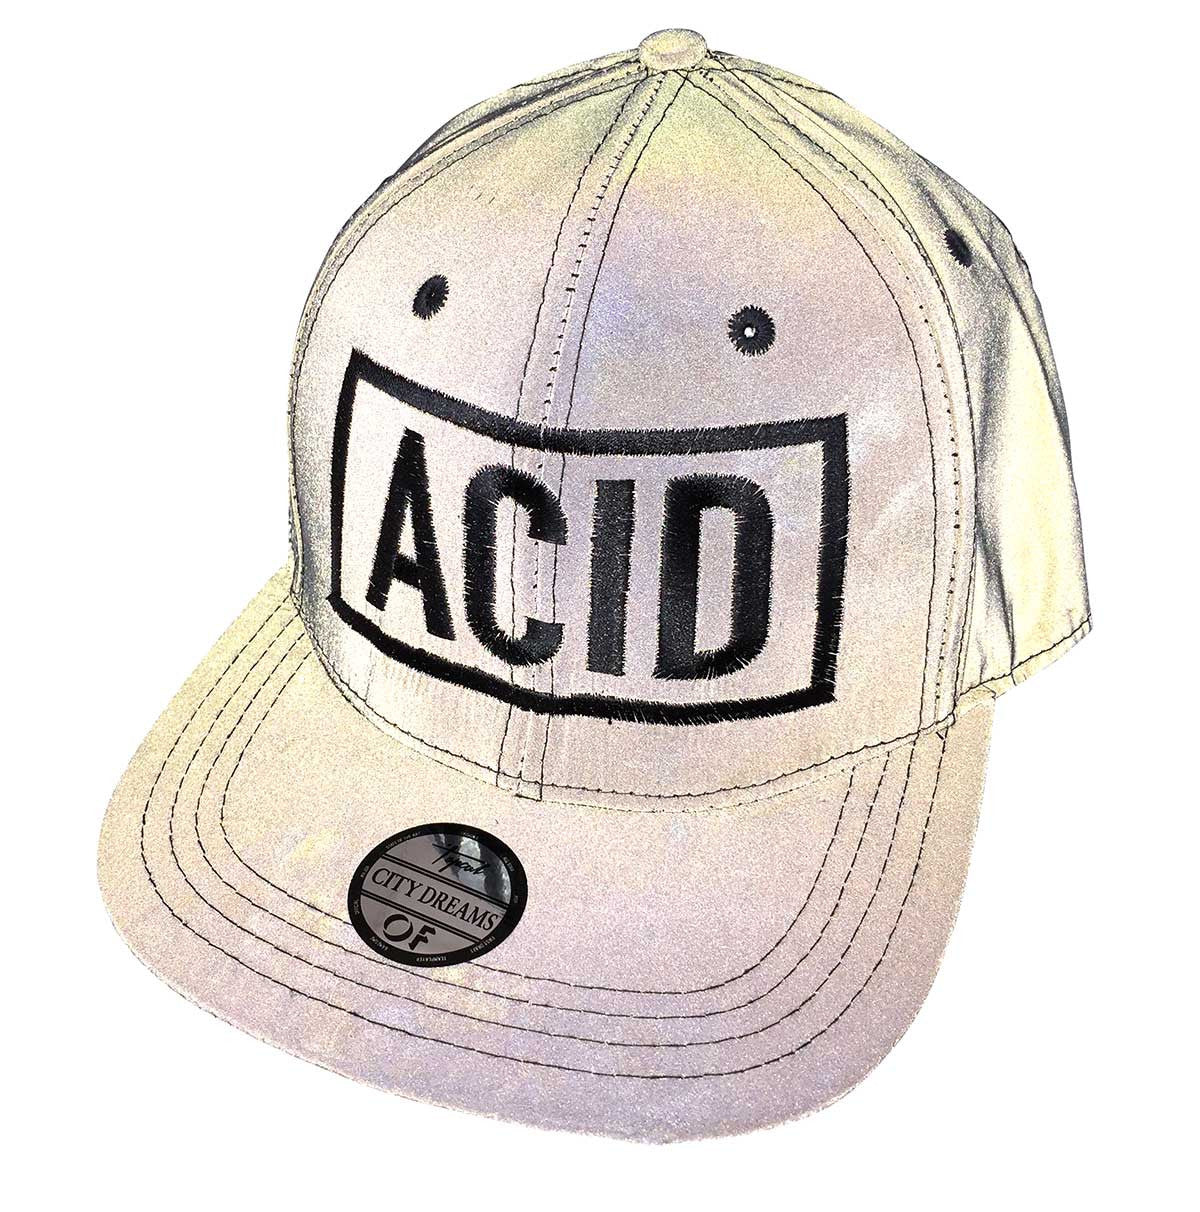 452eee191d1 ACID Hat with camera flash on. Limited Edition 3d Embroidered  Retroreflective Cap